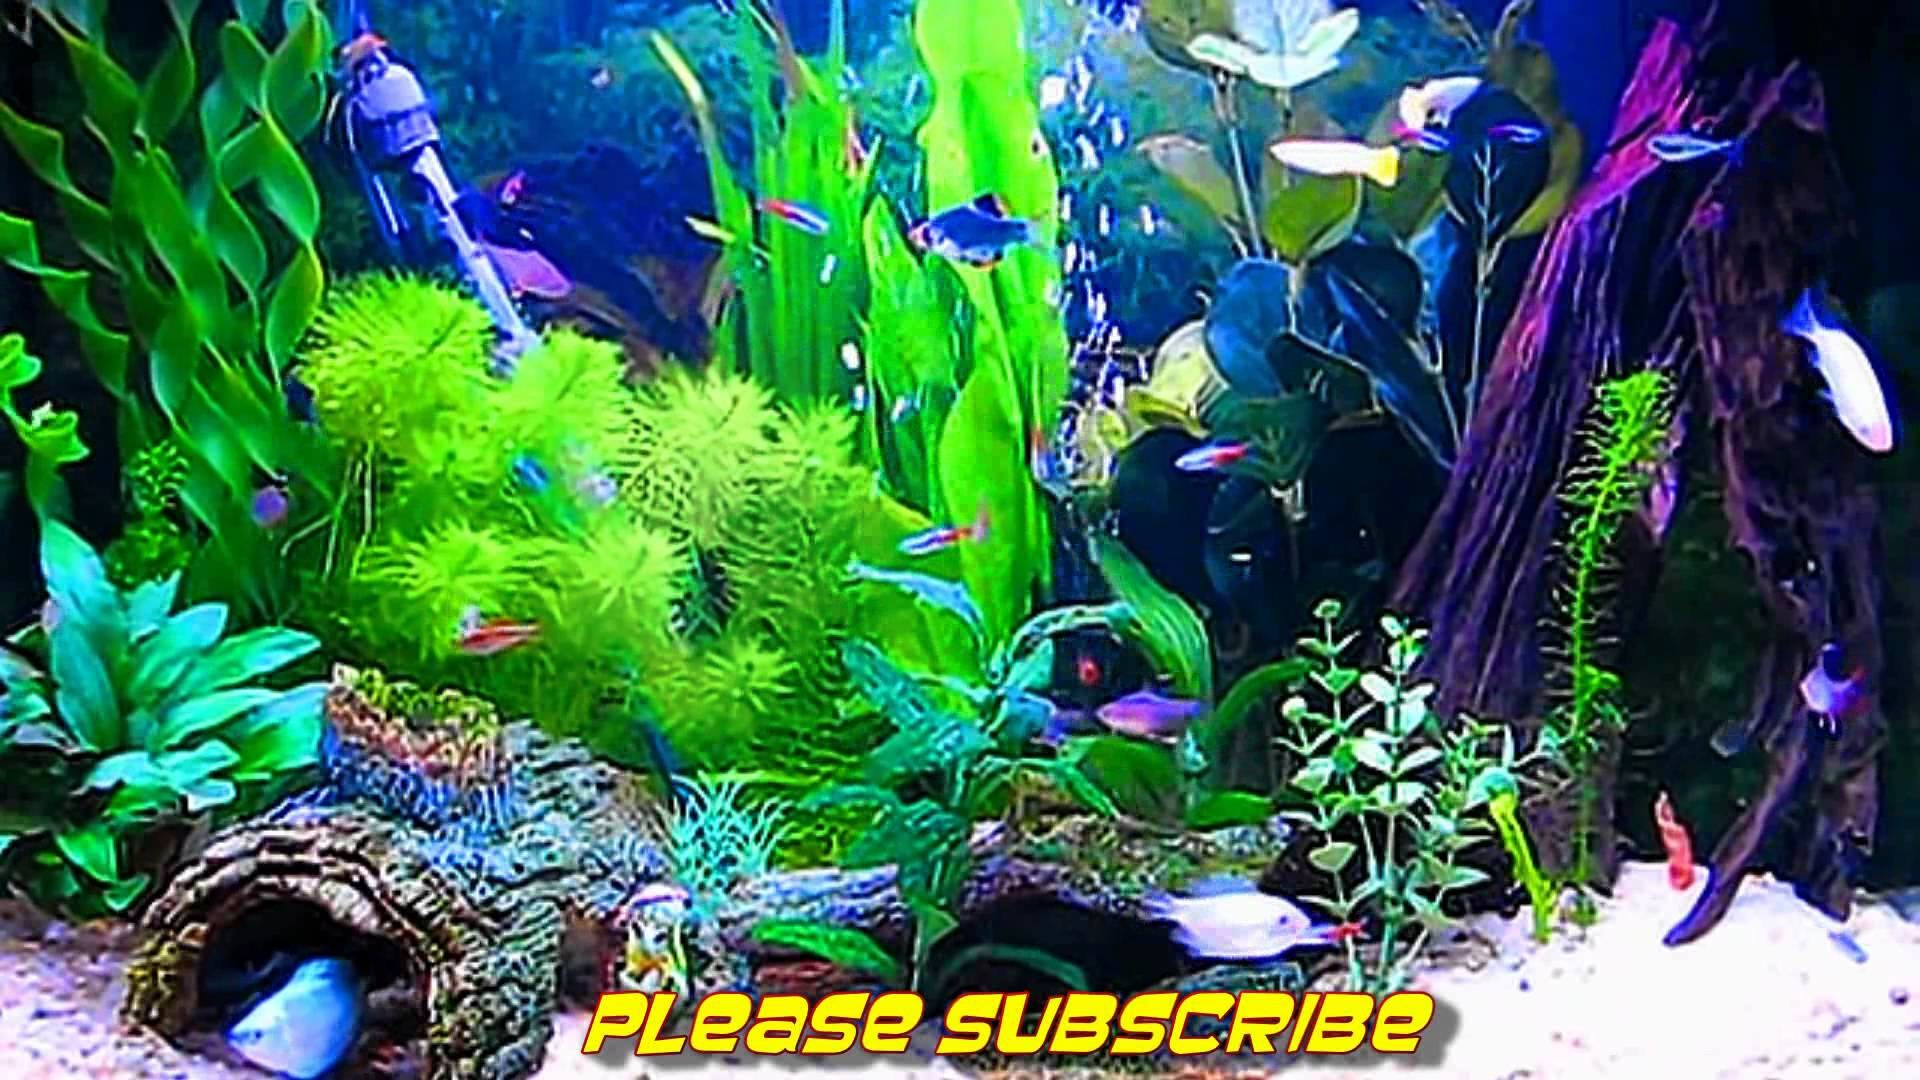 Download Live Aquarium Wallpaper For Mobile Gallery | Free Wallpapers |  Pinterest | Wallpaper and Wallpaper gallery